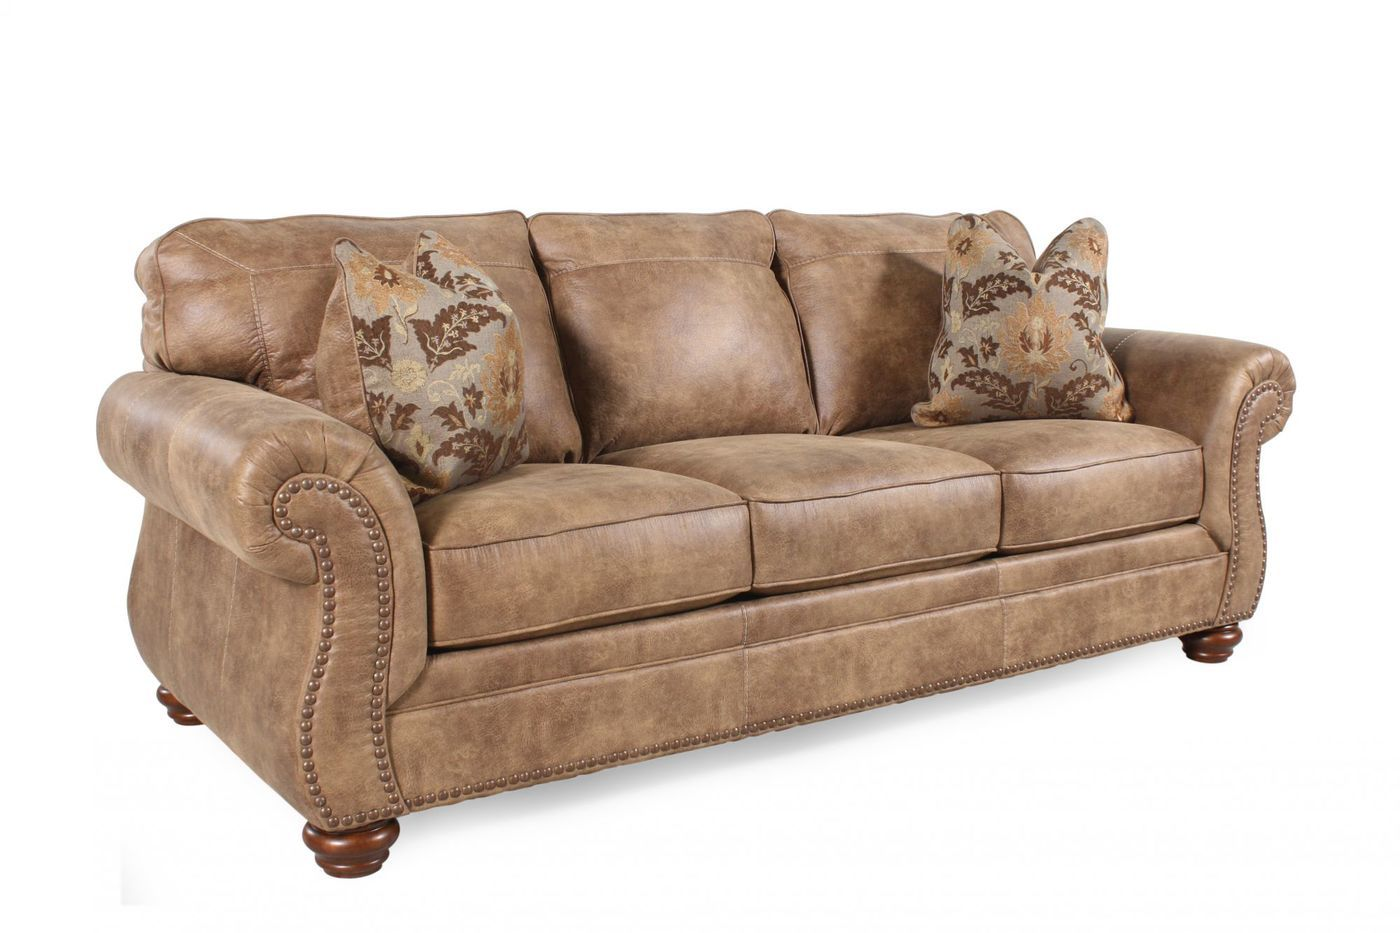 Leather Sofas Or Fabric Sofas The Duel Of Eternity Traditional